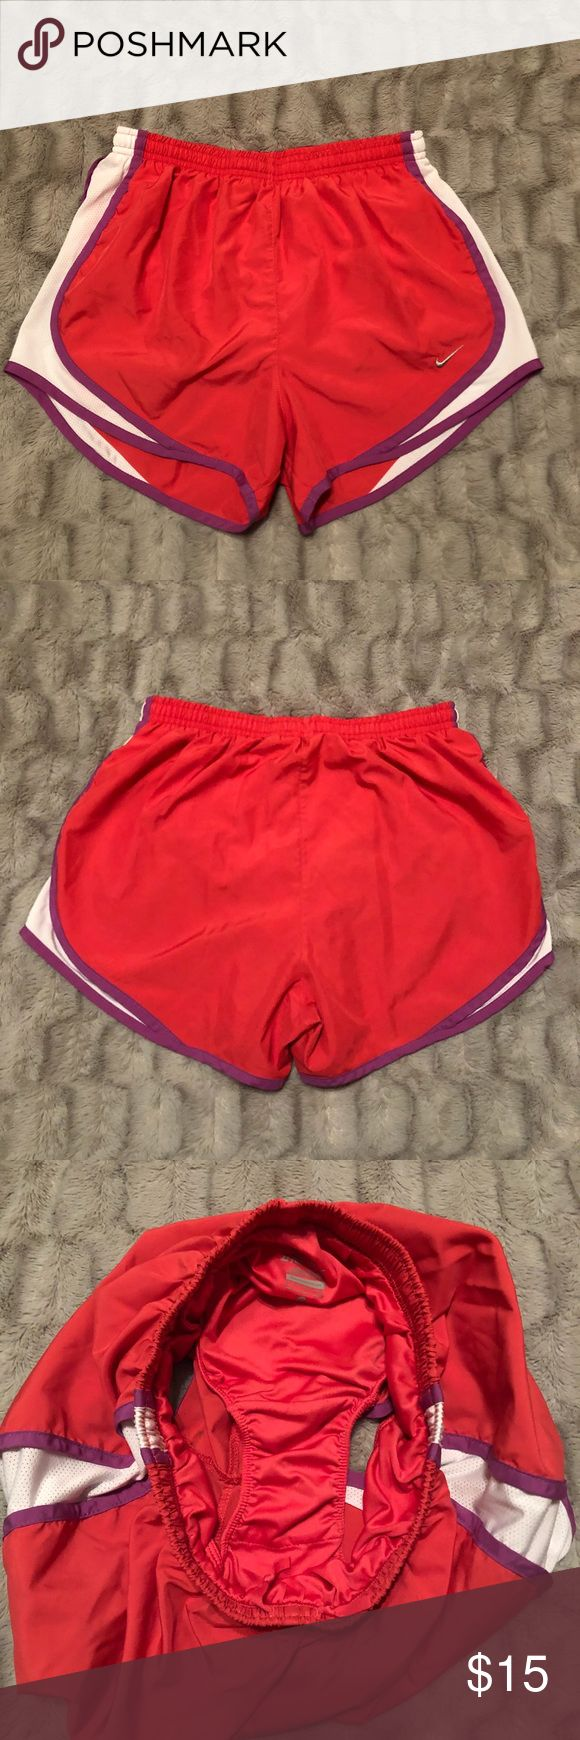 Nike Tempo Shorts These ever so popular Nike tempo shorts are in excellent condition.  Like new, these shorts will make you run fast, jump higher, and feel comfortable!  Item is slightly more pink than it appears in the photo.  Built-in interior still present, never worn without undergarments. Nike Shorts